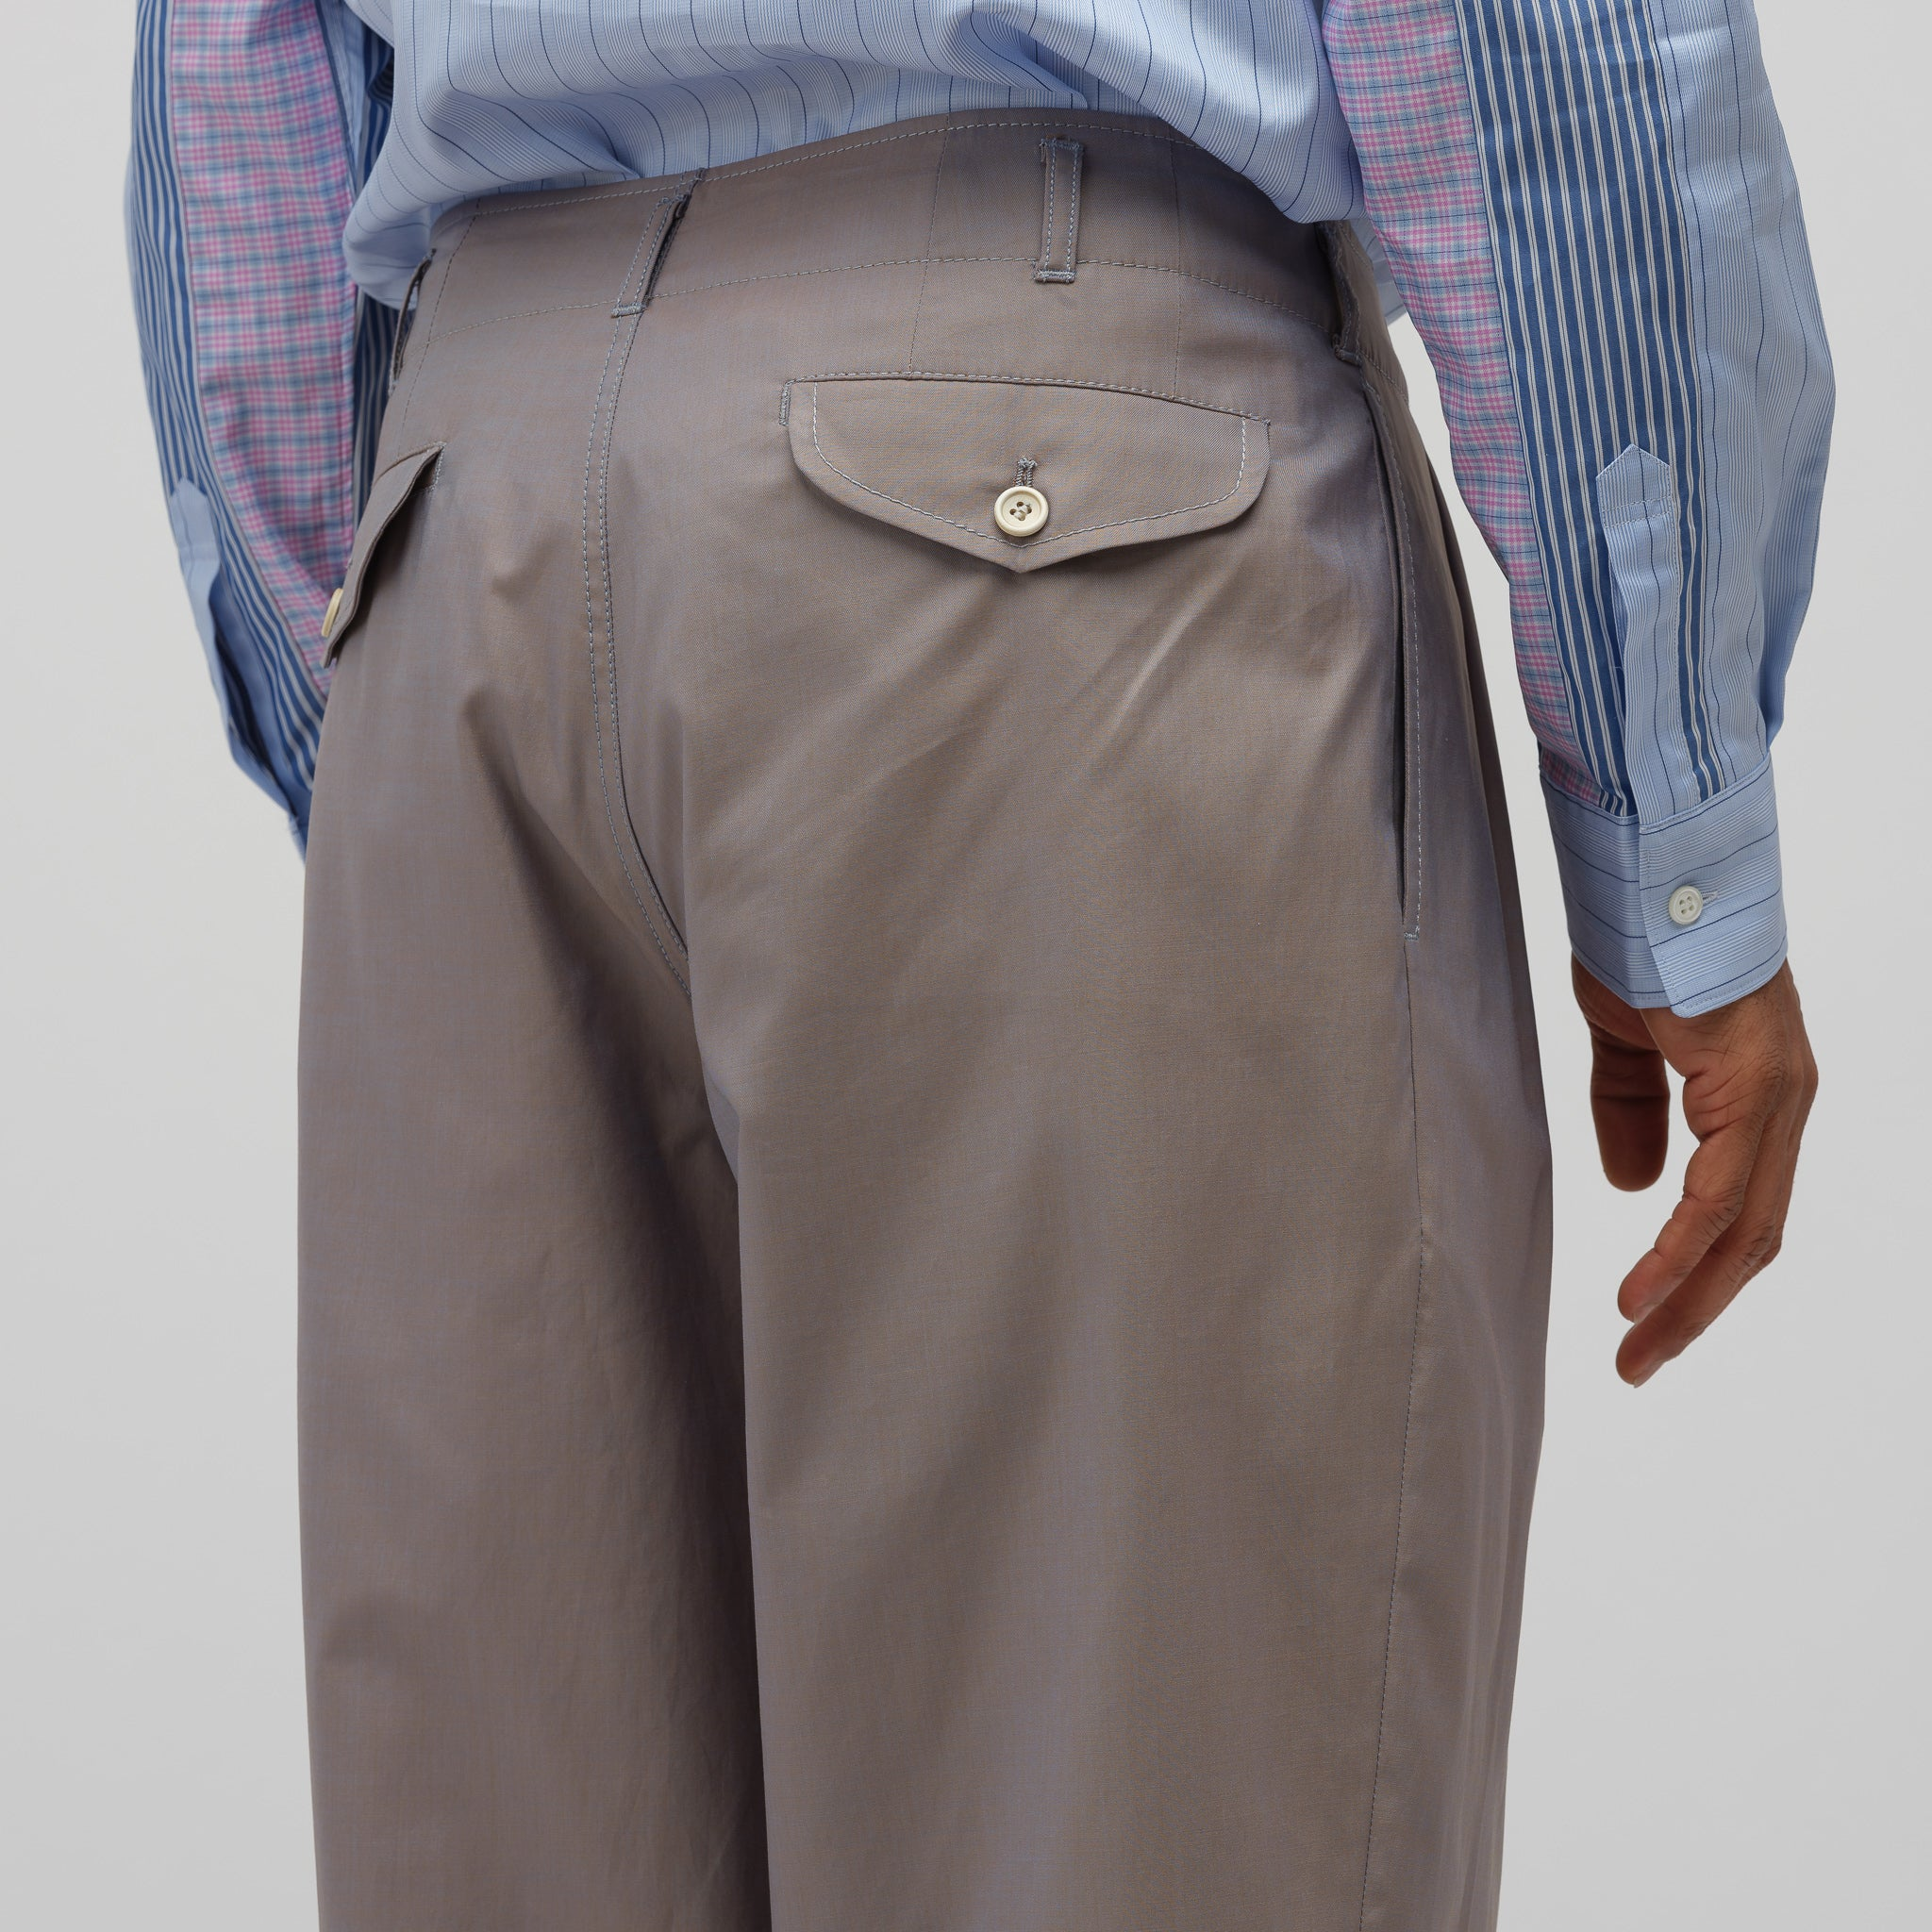 Wide Leg Pant in Grey/Blue